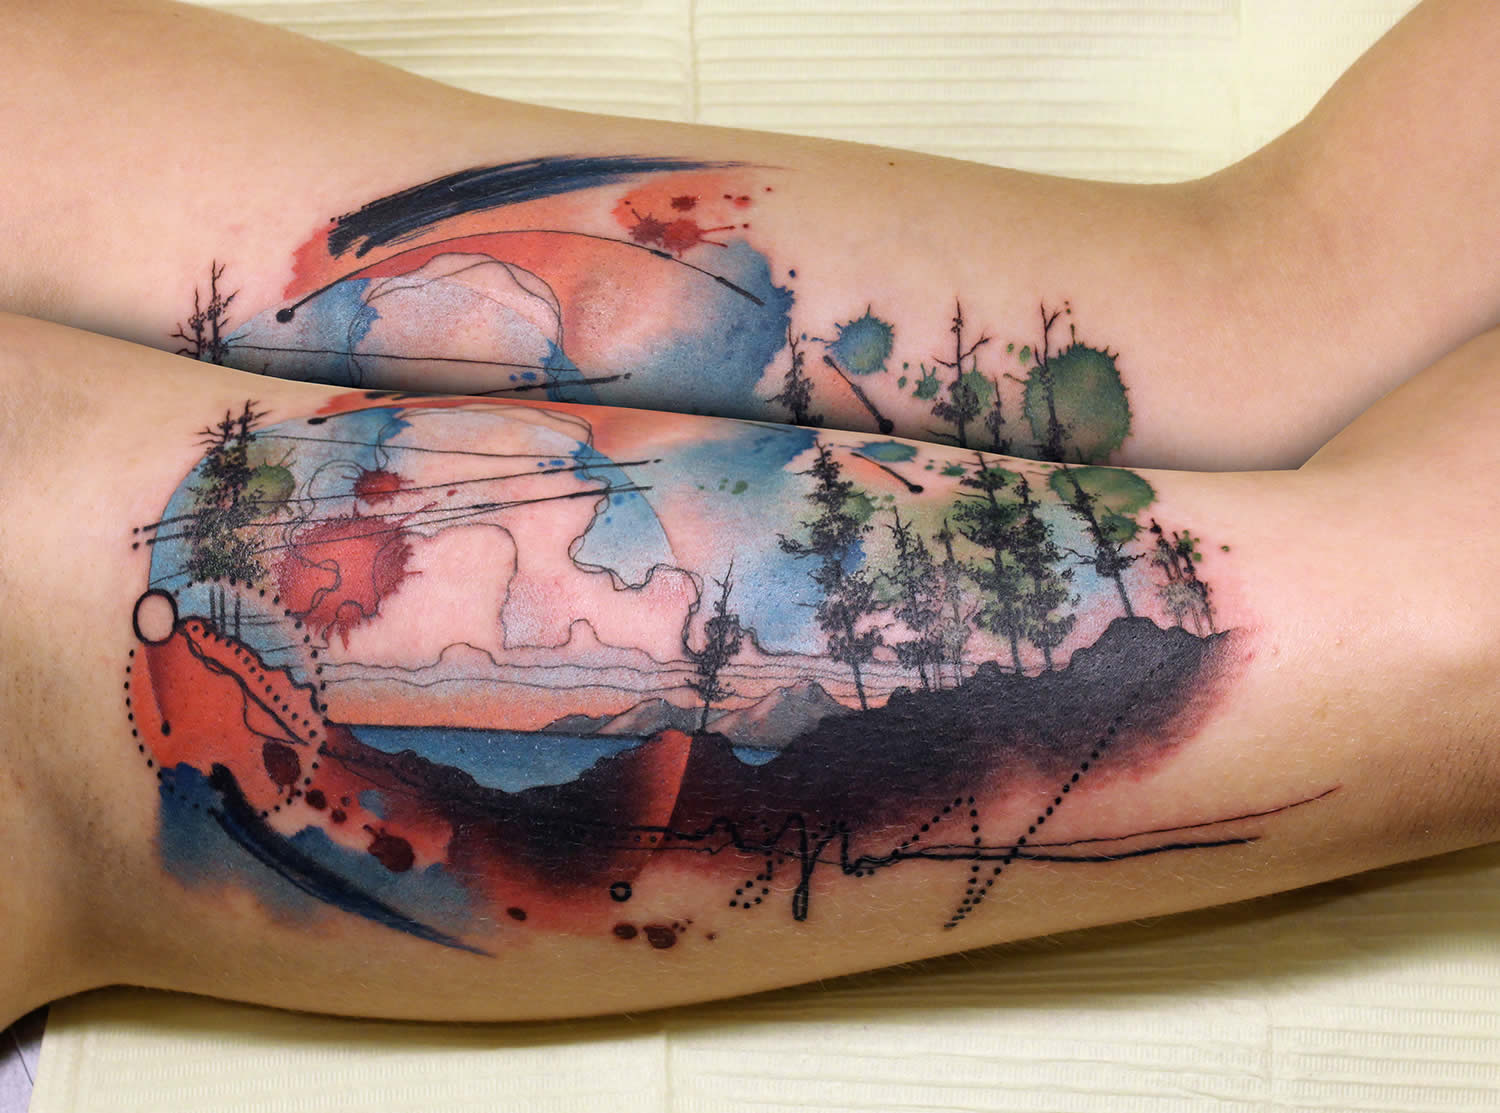 painterly, watercolor nature tattoo by cody eich